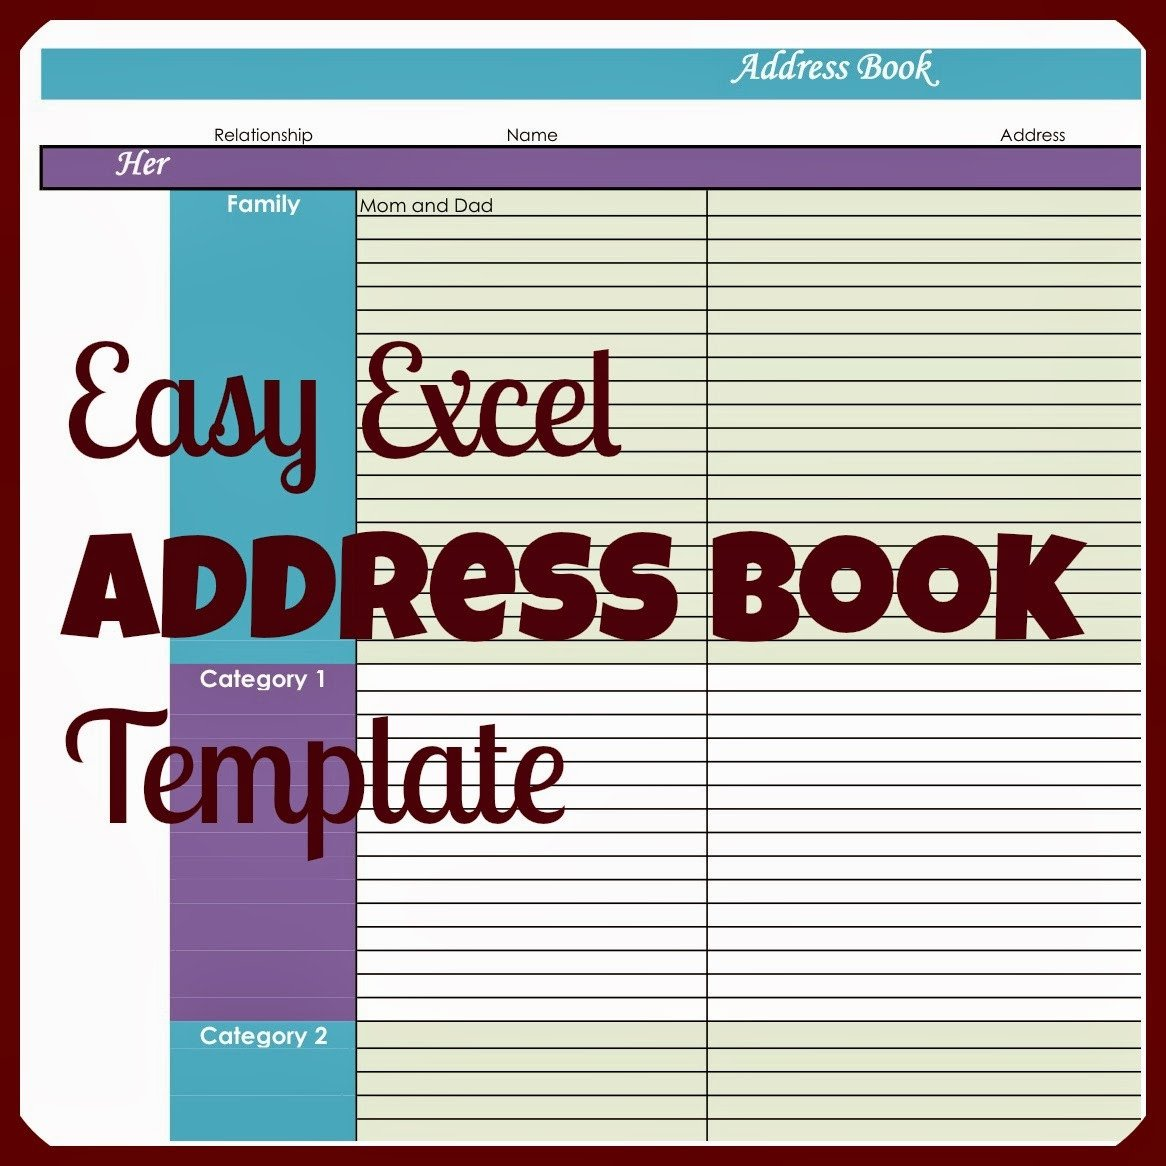 Address Book Template Excel Laura S Plans Easy Excel Address Book Template